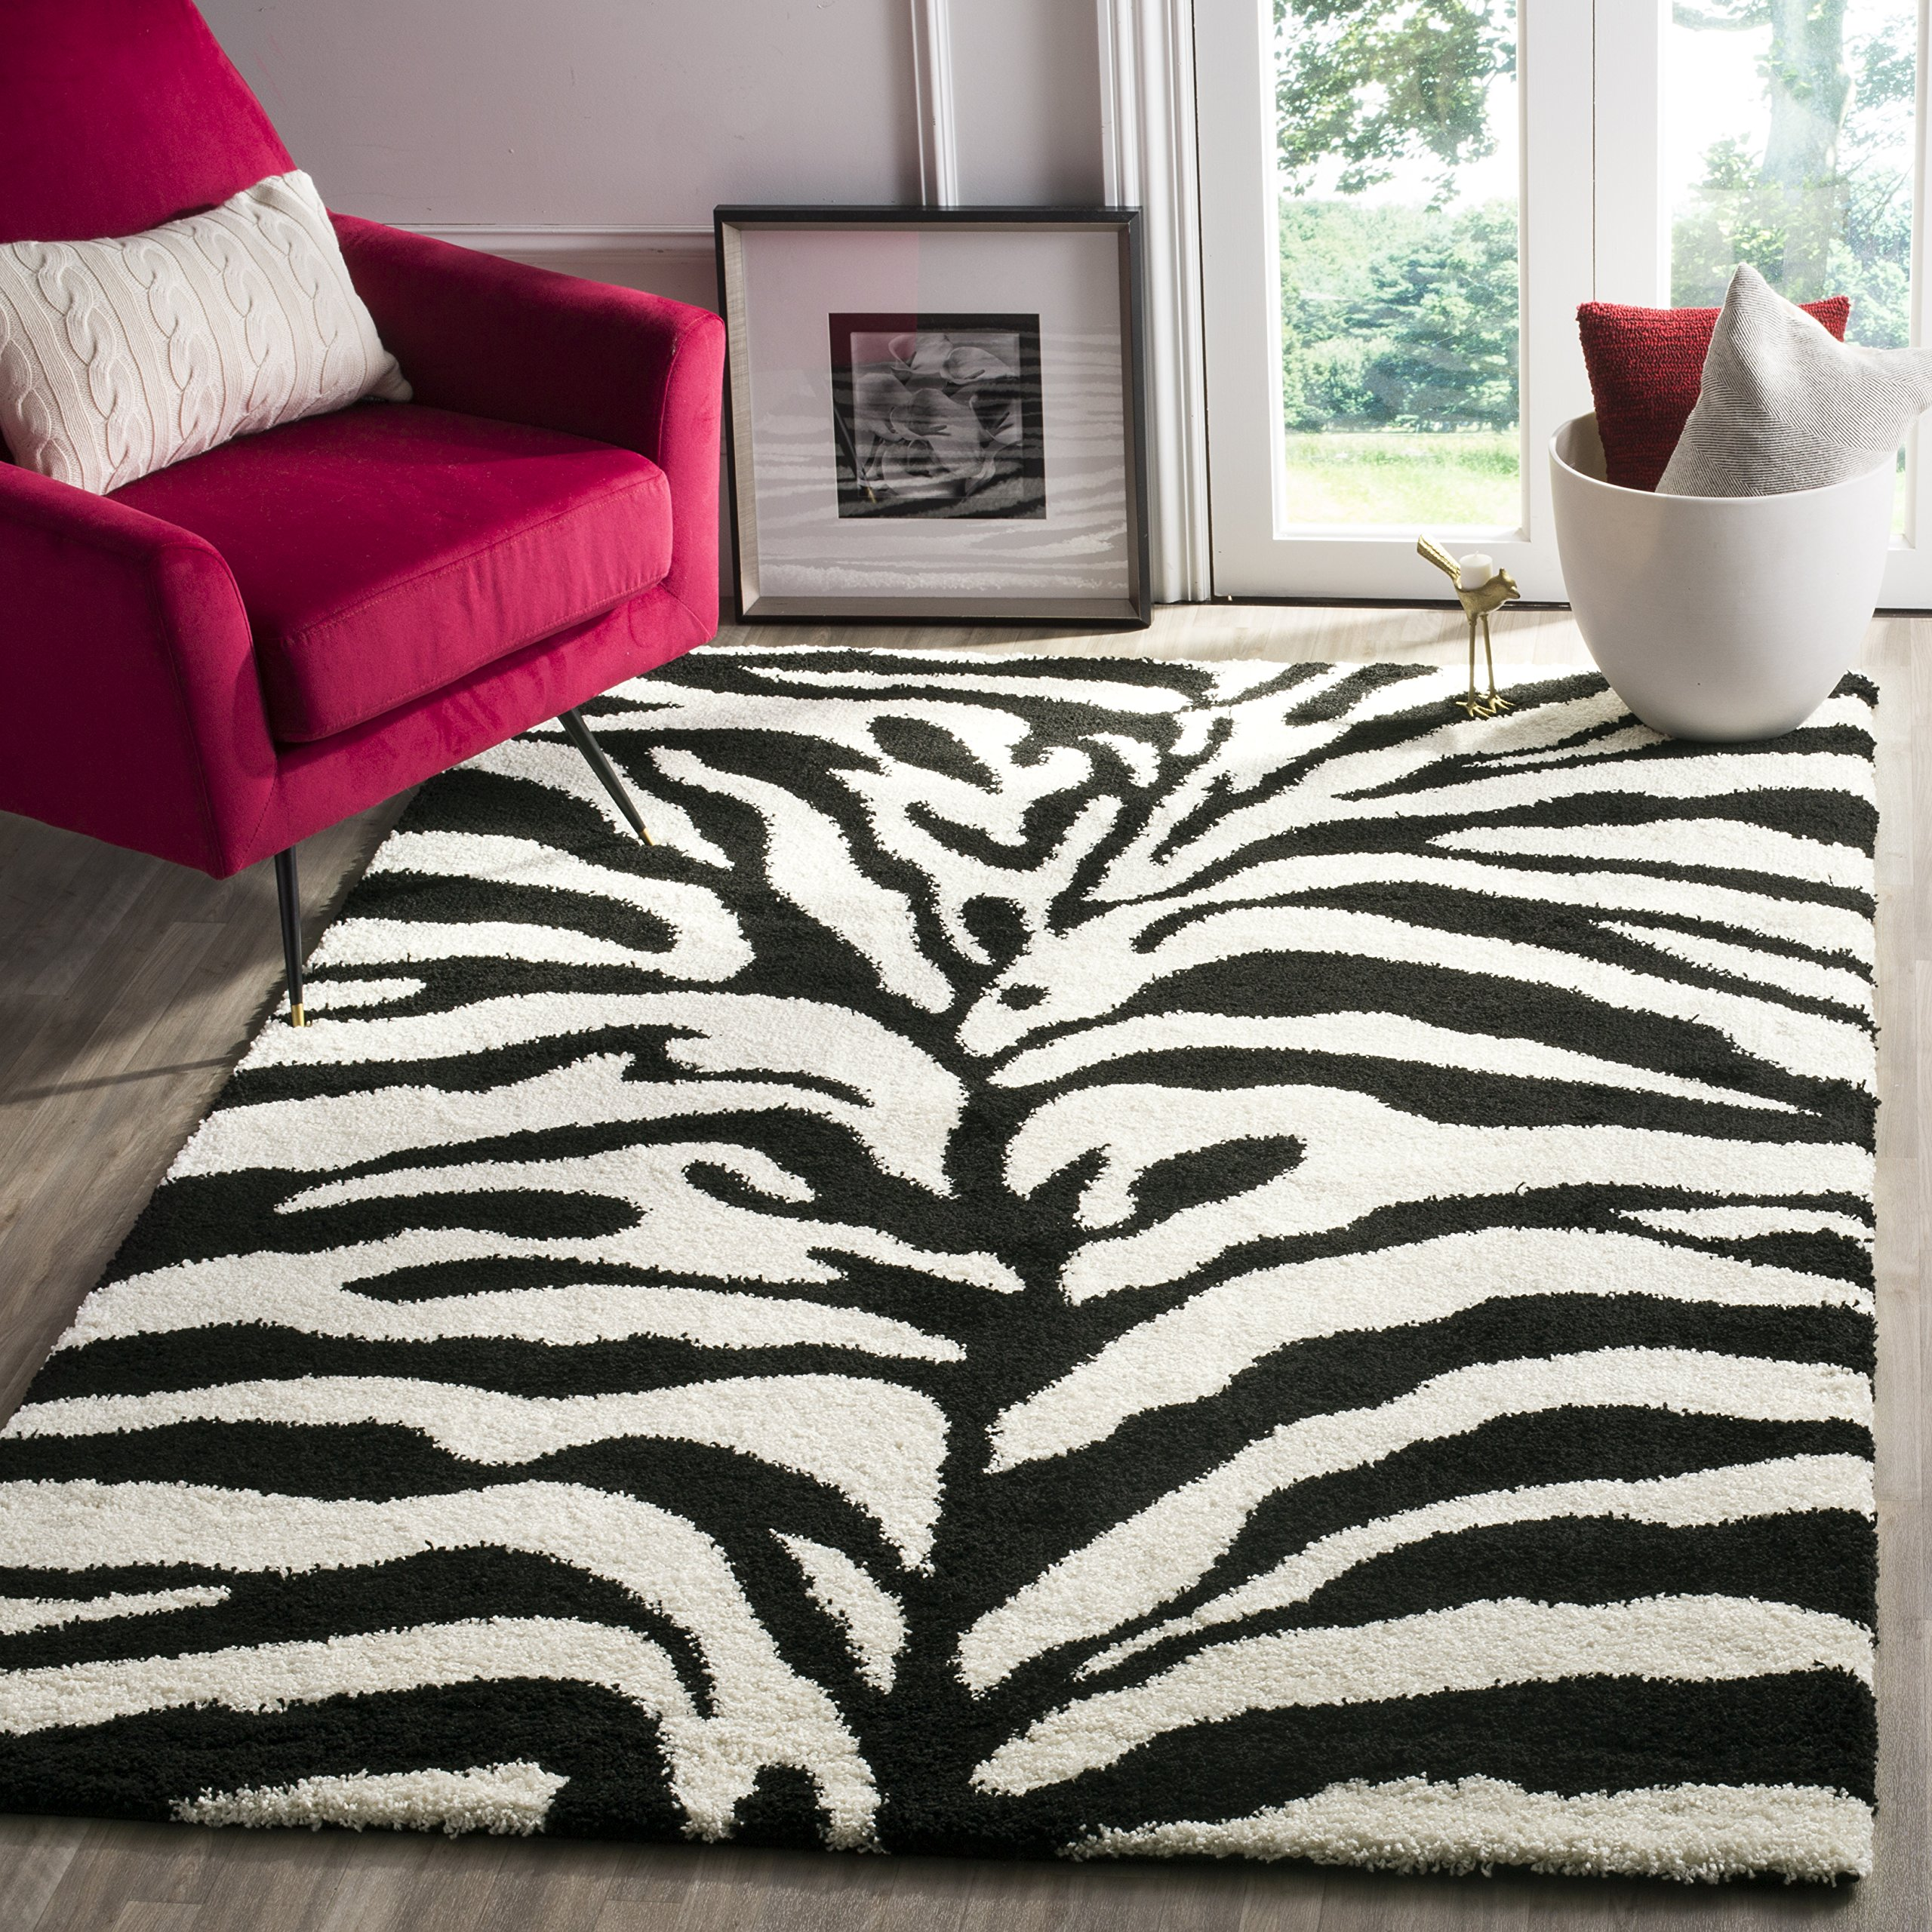 Safavieh Zebra Shag Collection SG452-1290 Ivory and Black Area Rug (3'3'' x 5'3'') by Safavieh